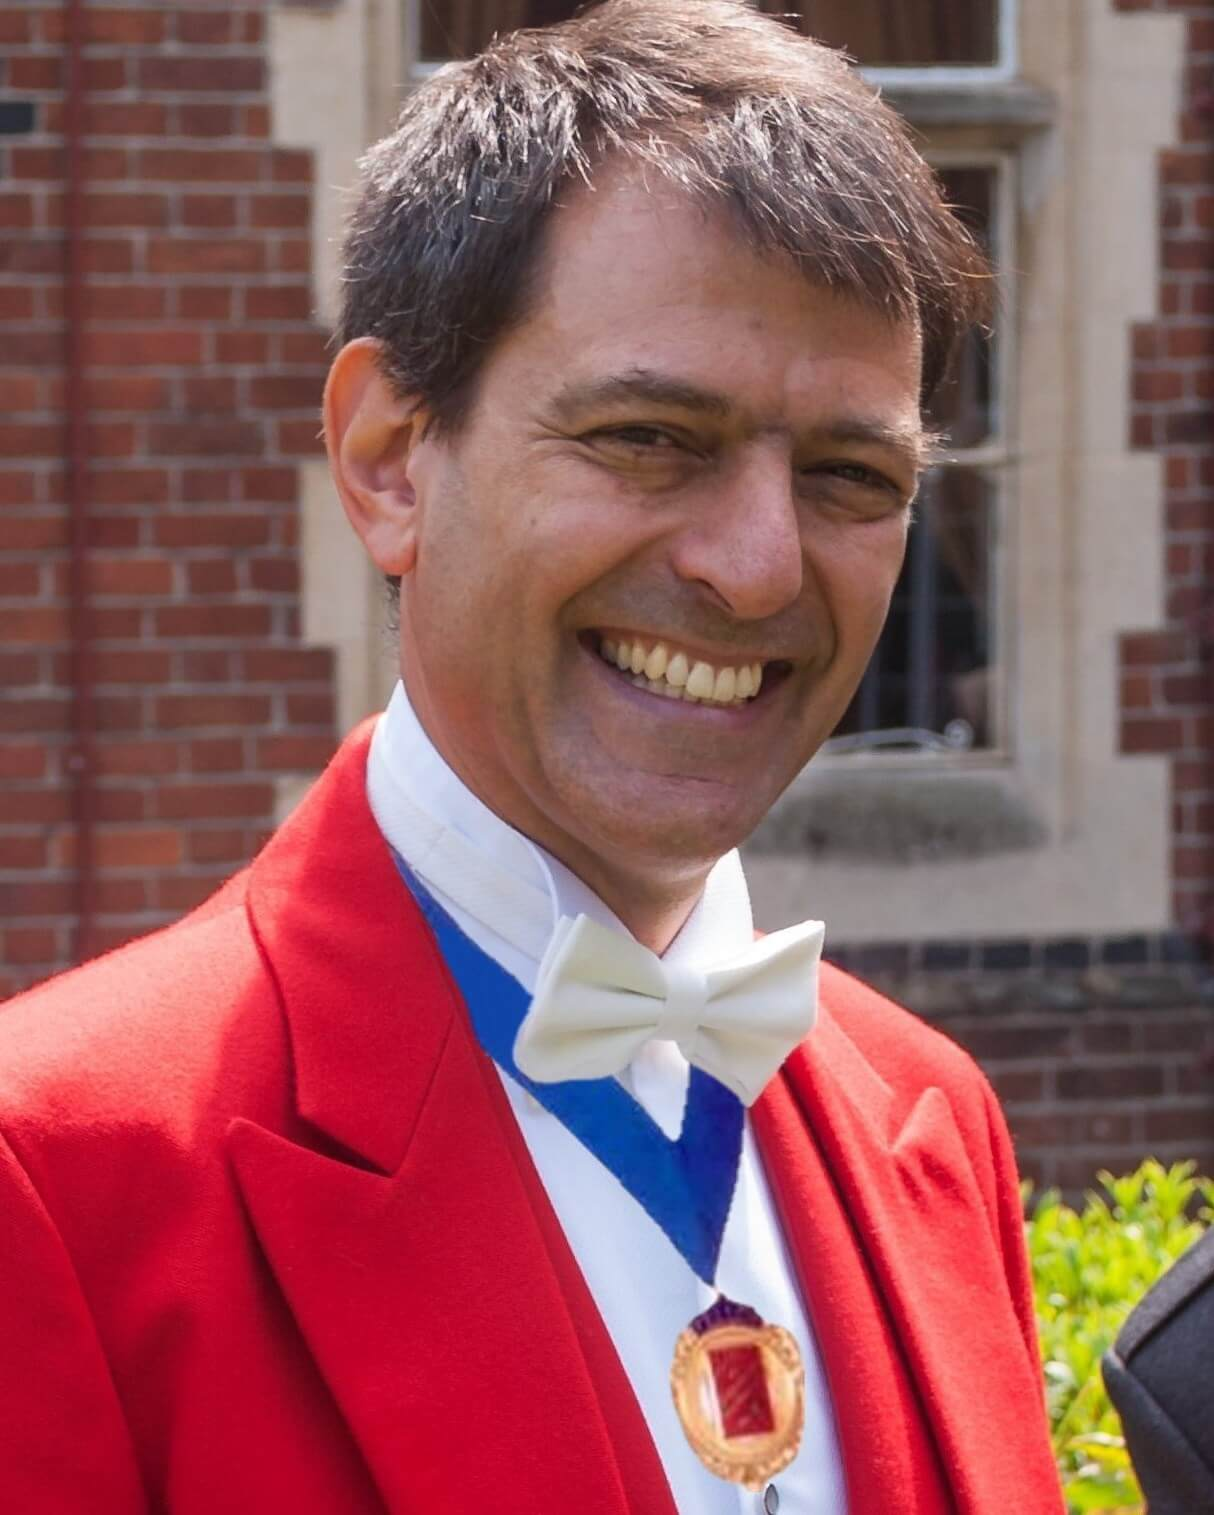 Professional Toastmaster and Master of Ceremonies Greater London - Tim Colmans